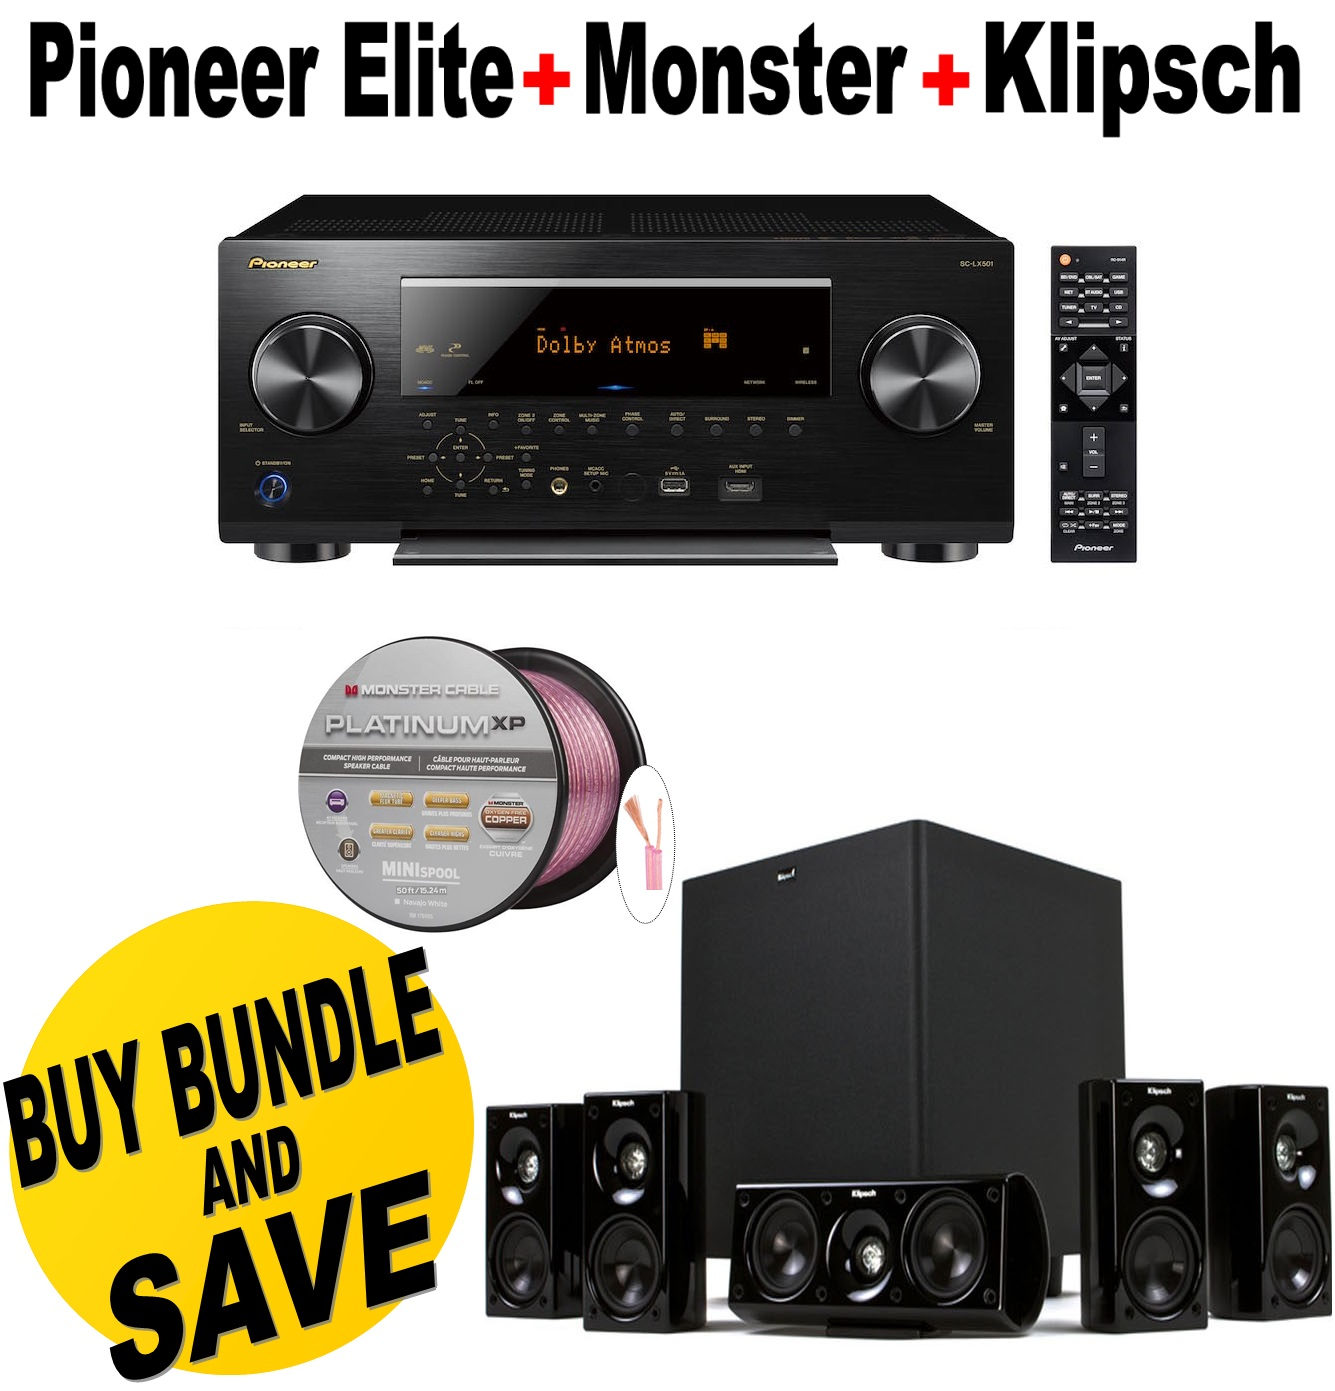 Pioneer SC-LX501 Elite 7.2 Channel D3 Network AV Receiver...